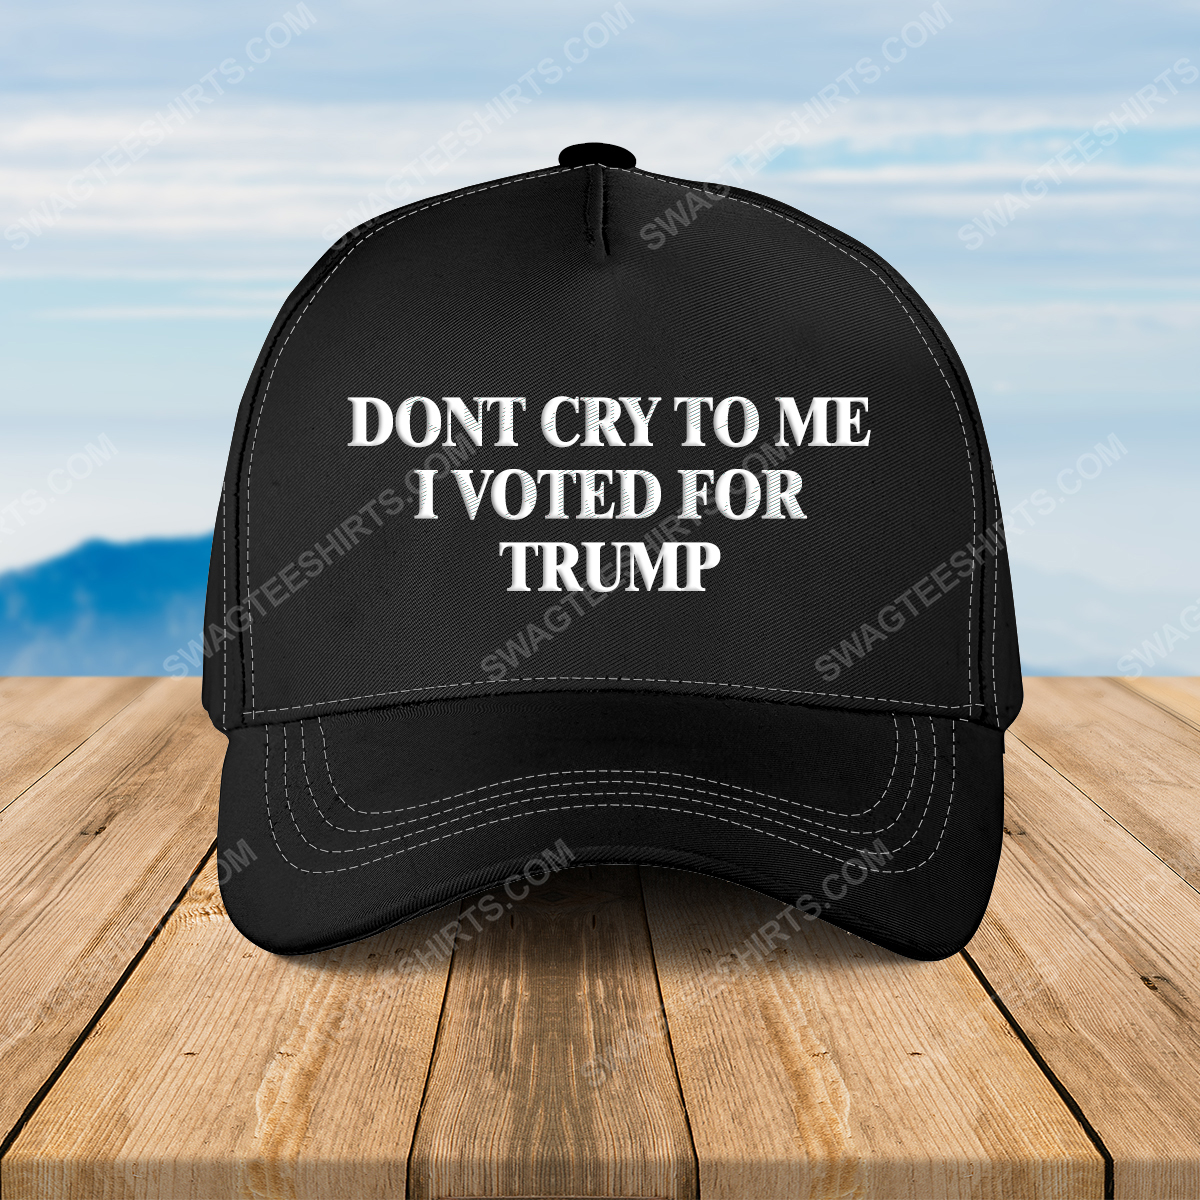 Camo don't cry to me i voted for trump full print classic hat 1